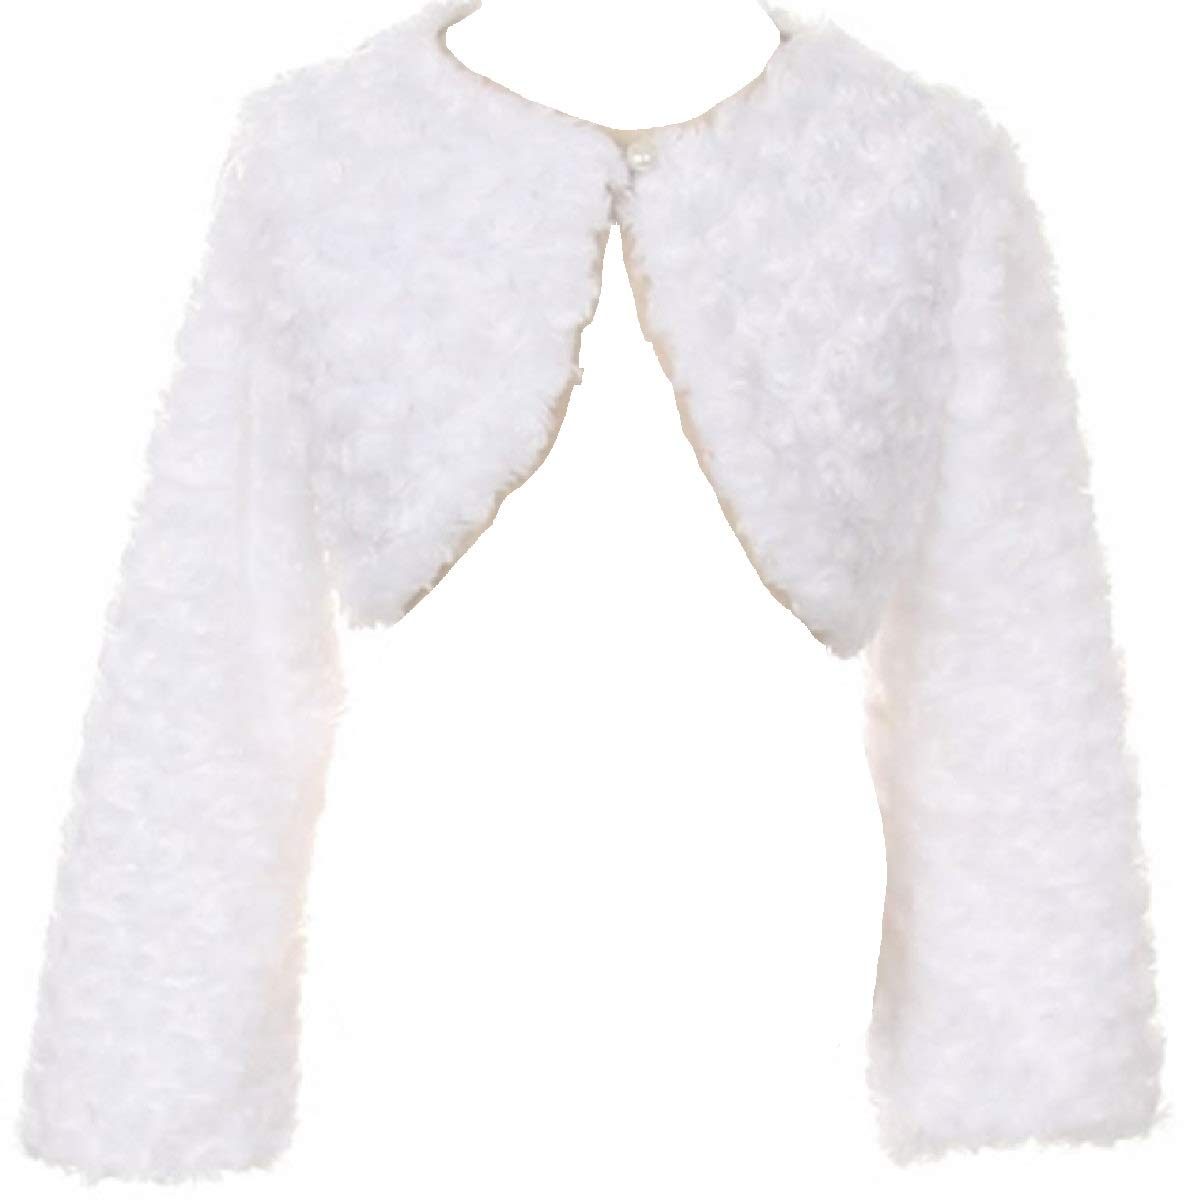 BNY Corner Faux Fur Dress Coat Flower Girl Bolero Jacket